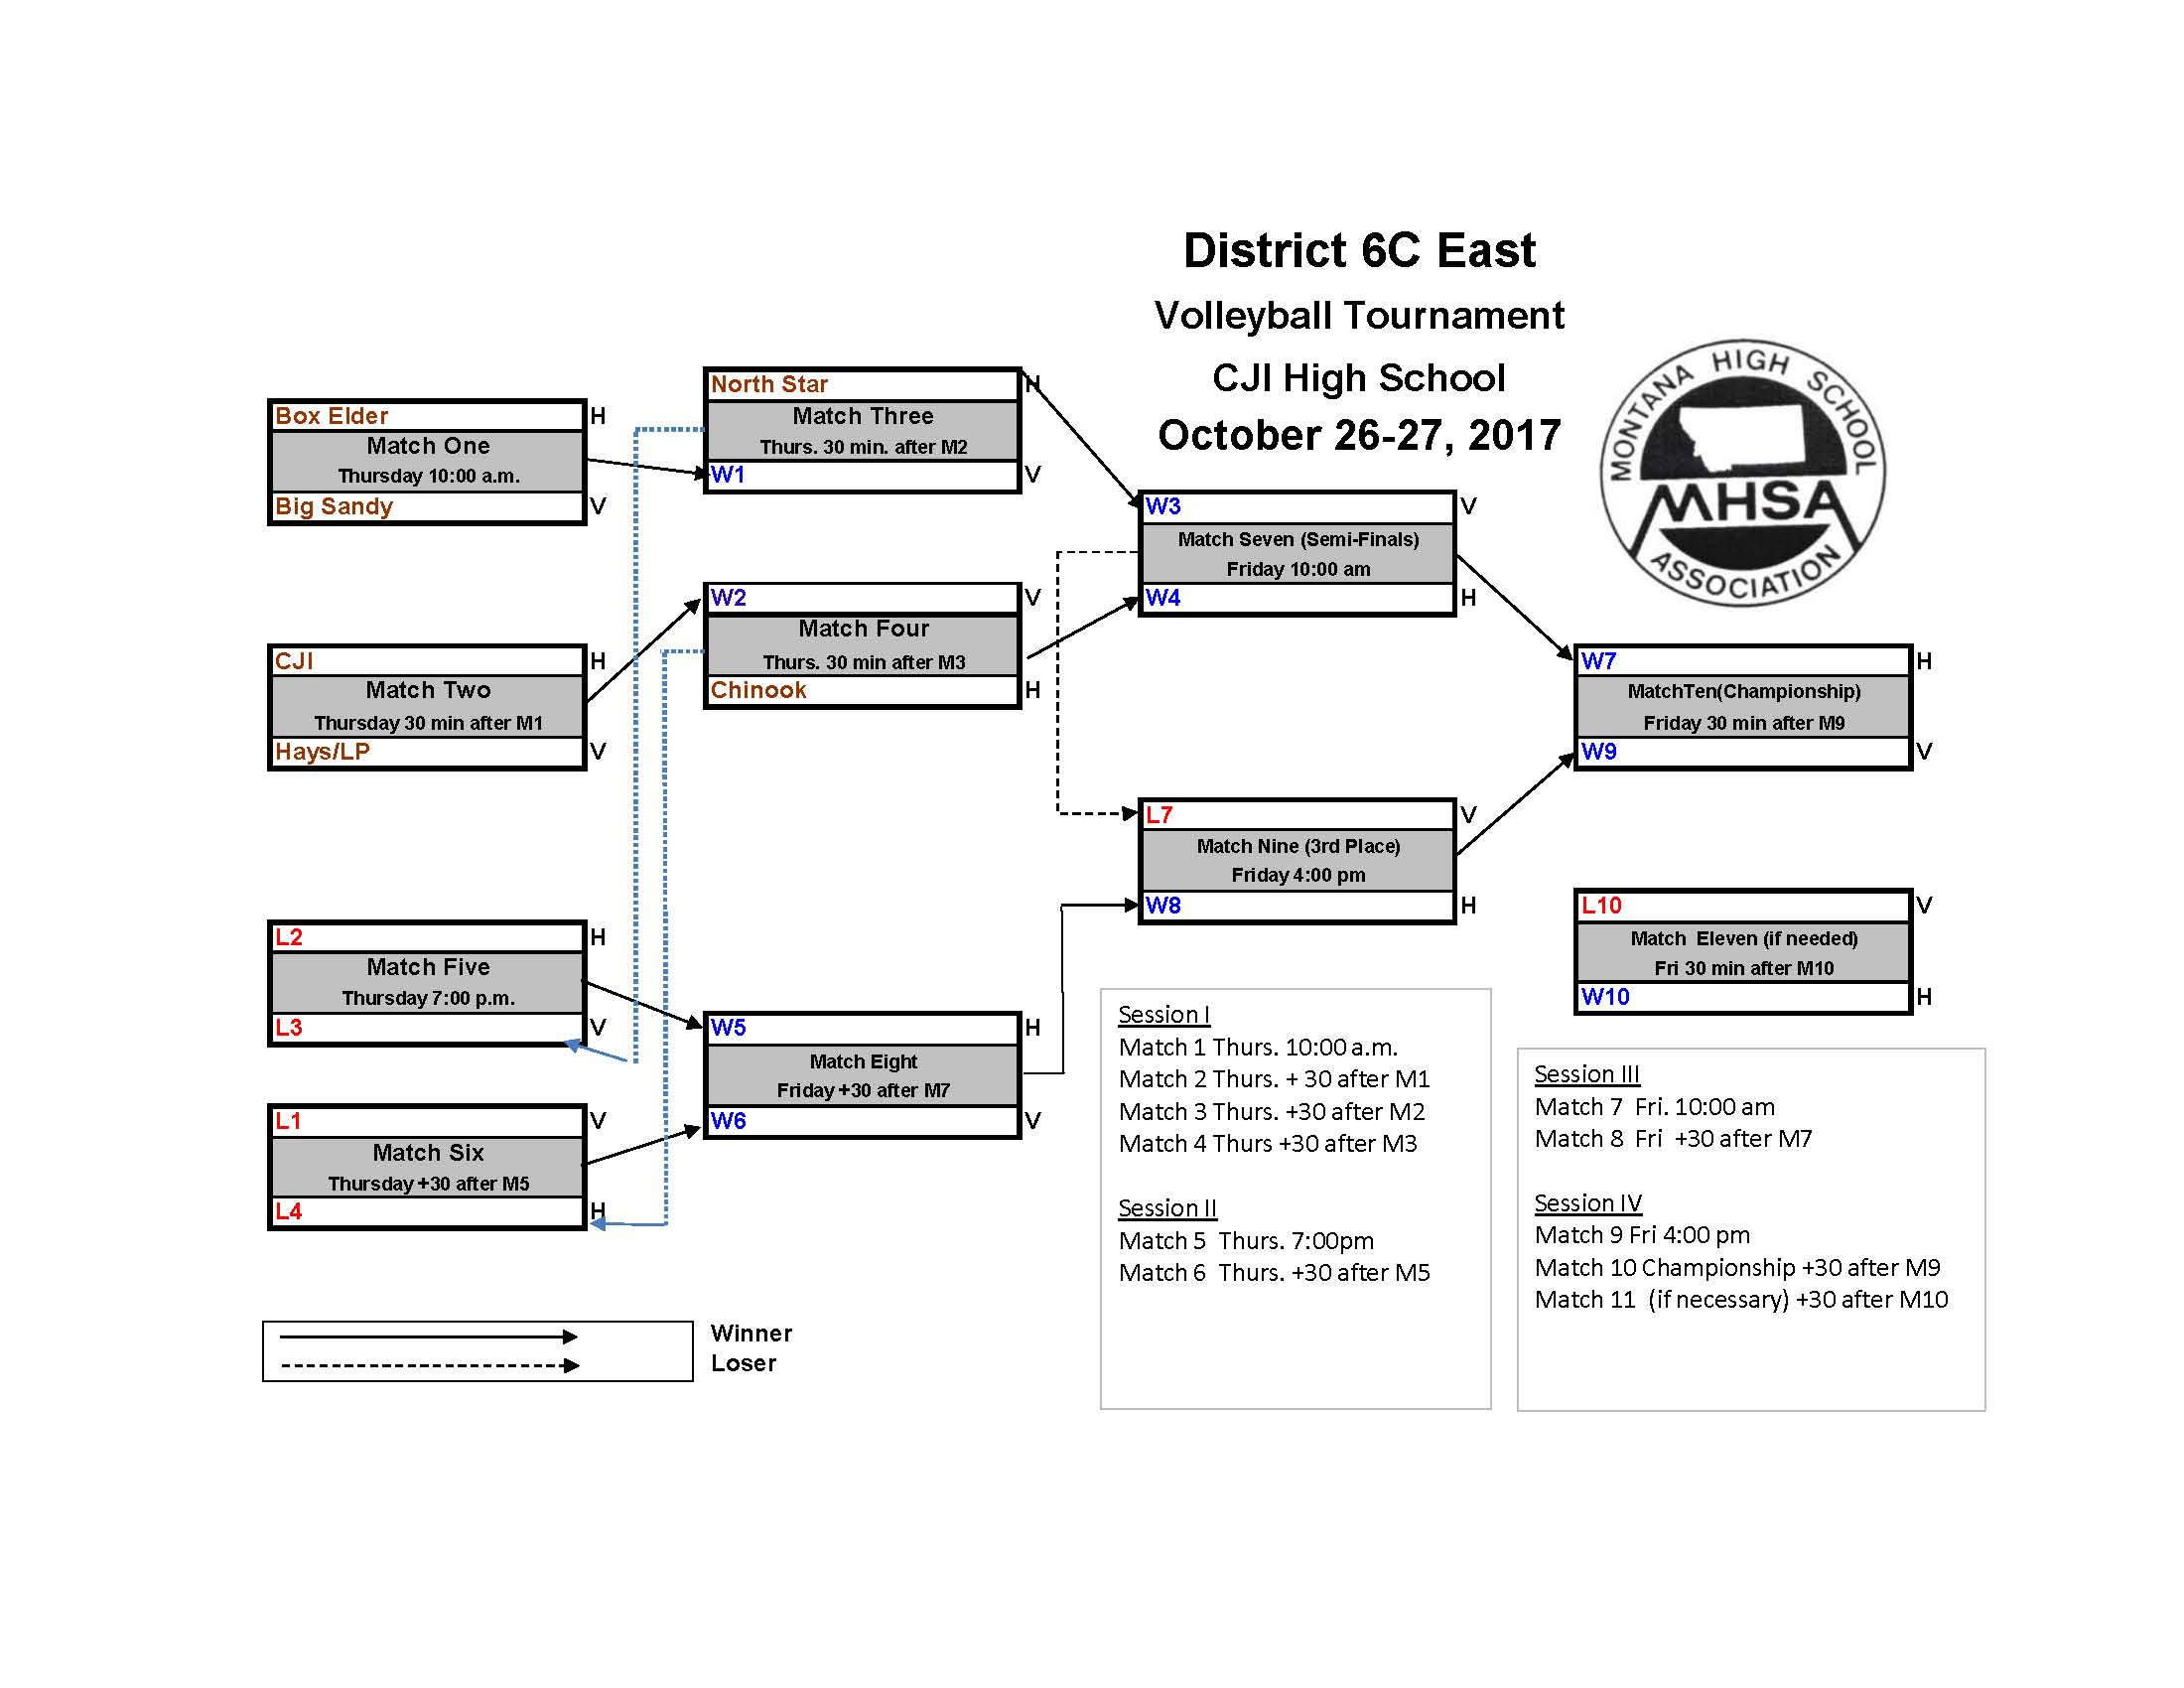 District 6C East Volleyball Bracket